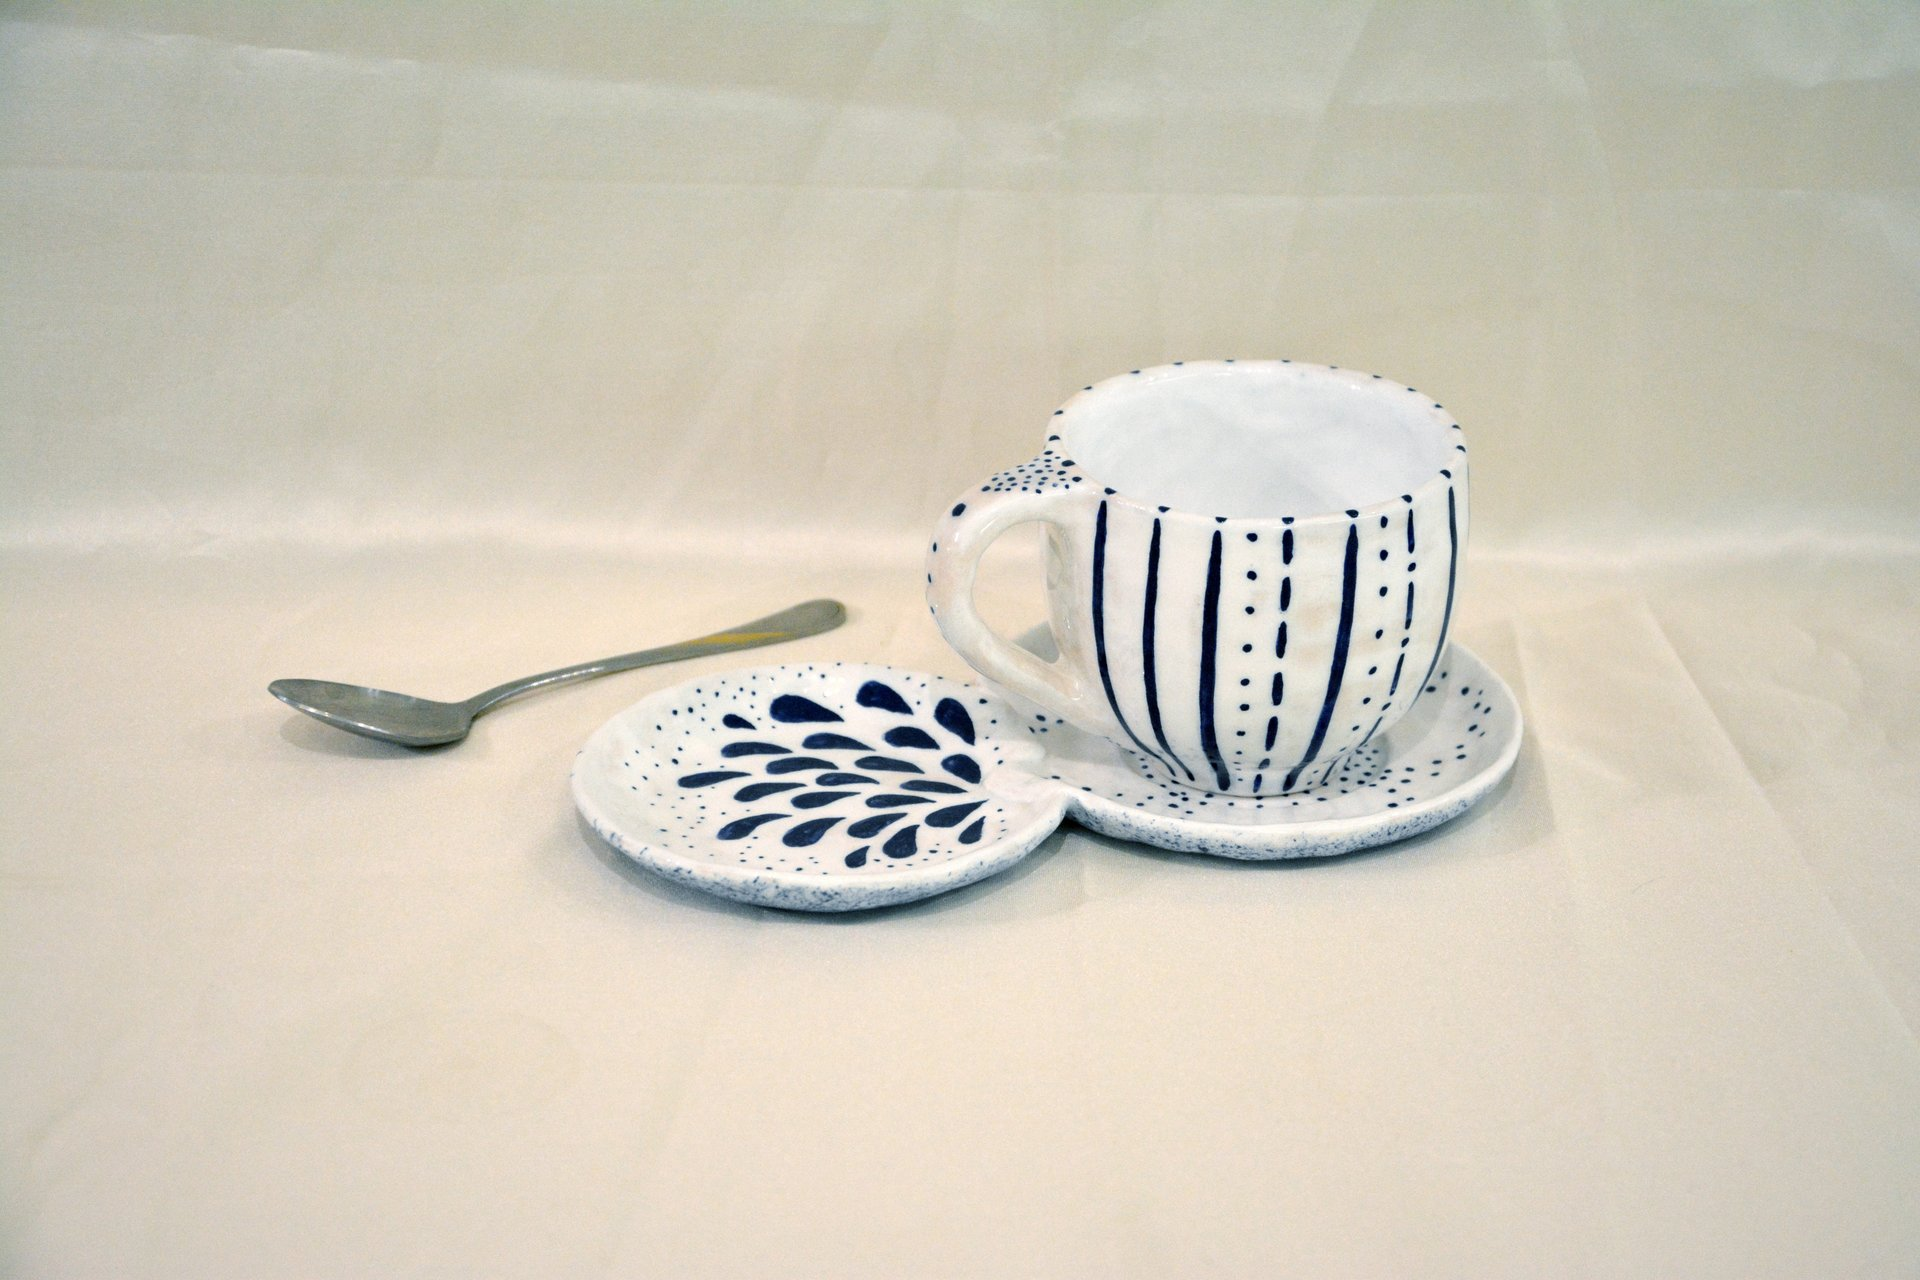 A pair of white cups with a blue pattern Strips — Points - Cups, glasses, mugs, 250 ml and 150 ml, photo 2 of 3.